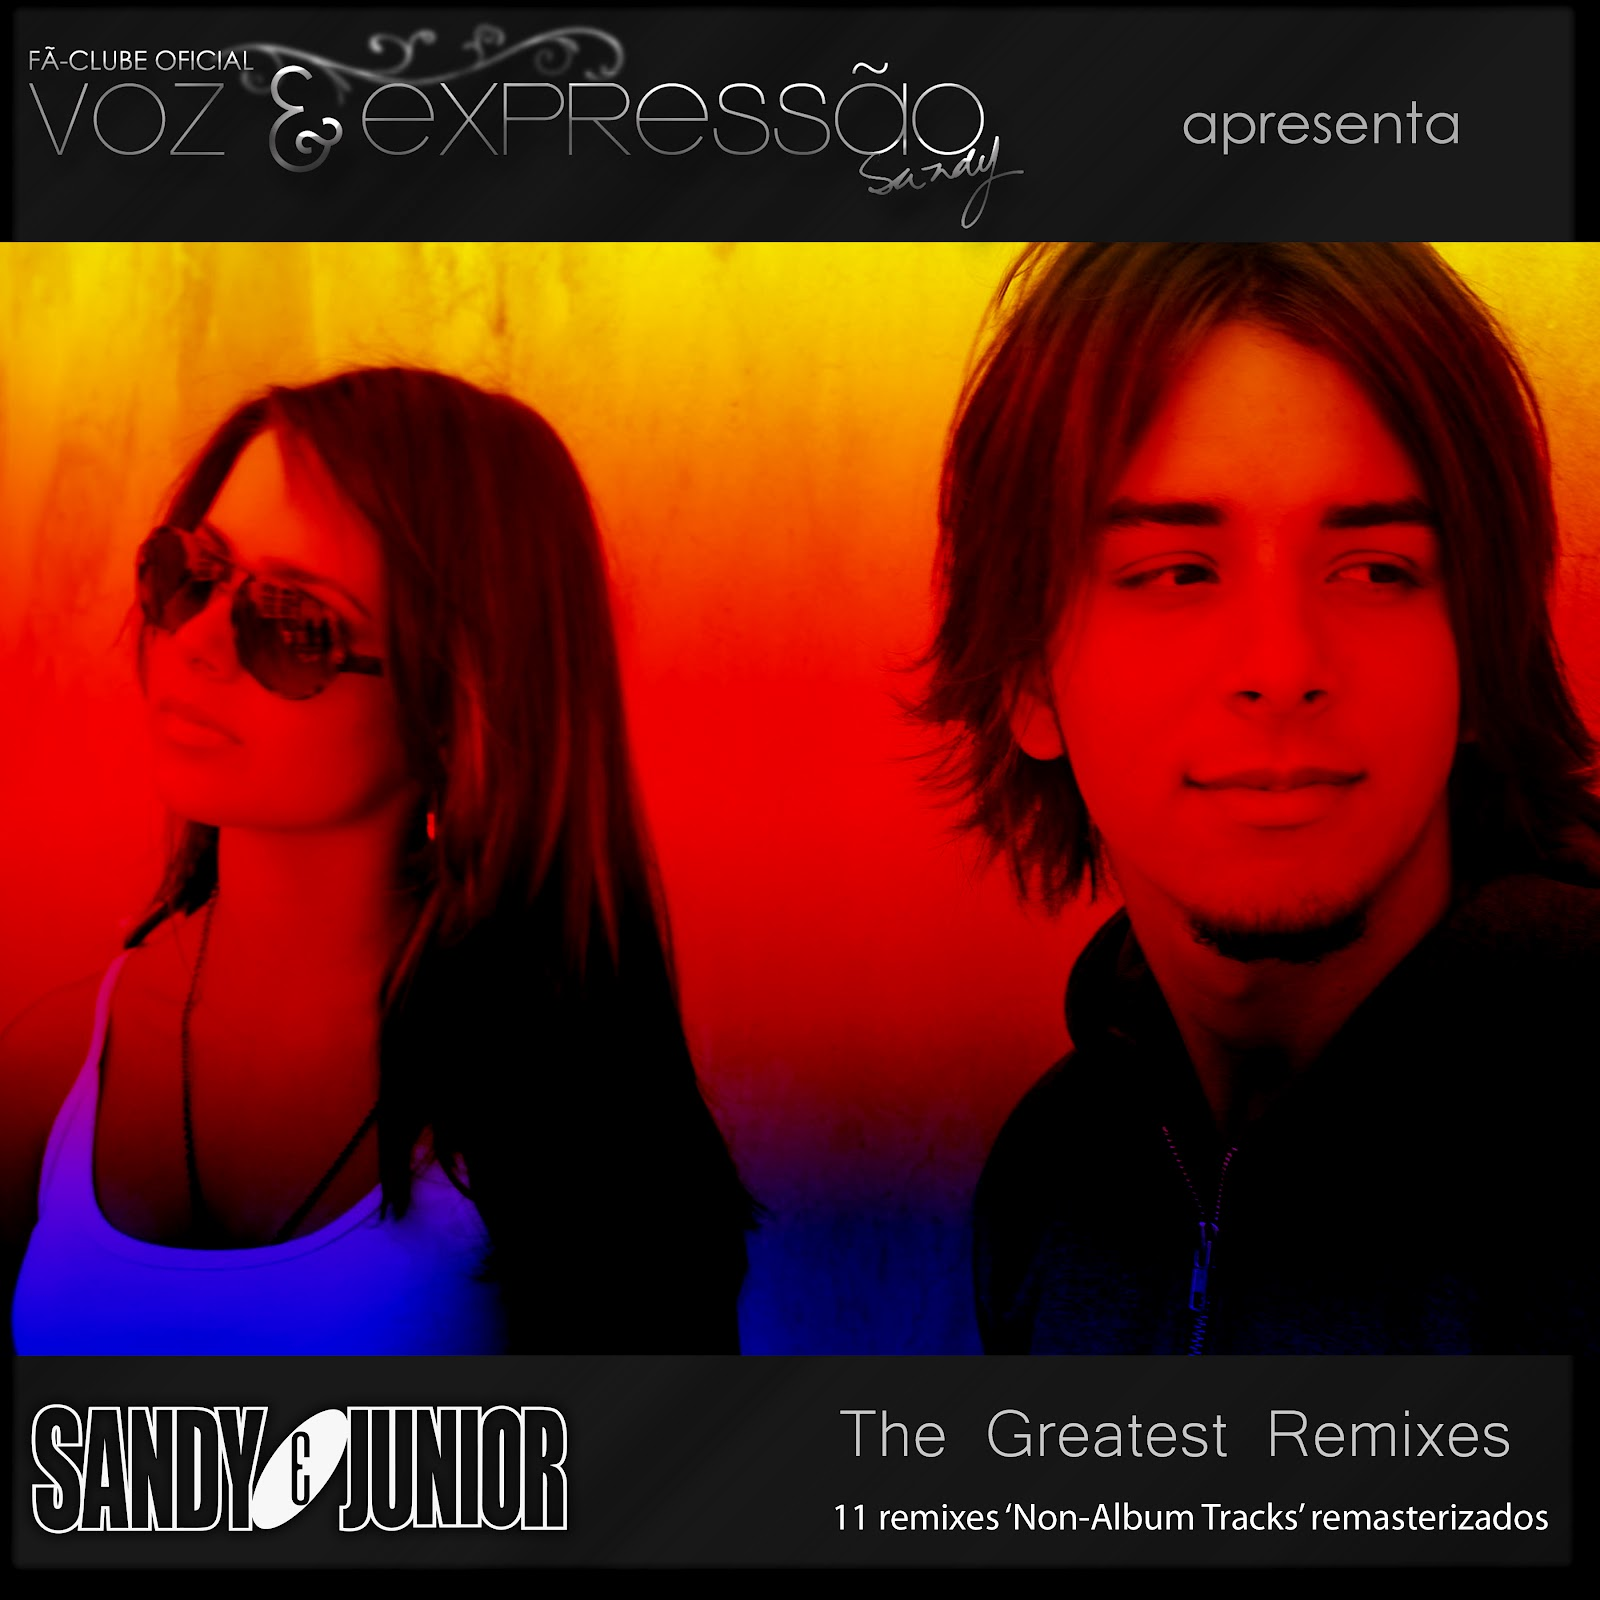 http://2.bp.blogspot.com/-ylL4FzxD47U/T0PTuVp3v1I/AAAAAAAADgo/g2uJkLEgJdI/s1600/Cd+Sandy+e+Junior+the+Greatest+hits+remix+download+front.jpg